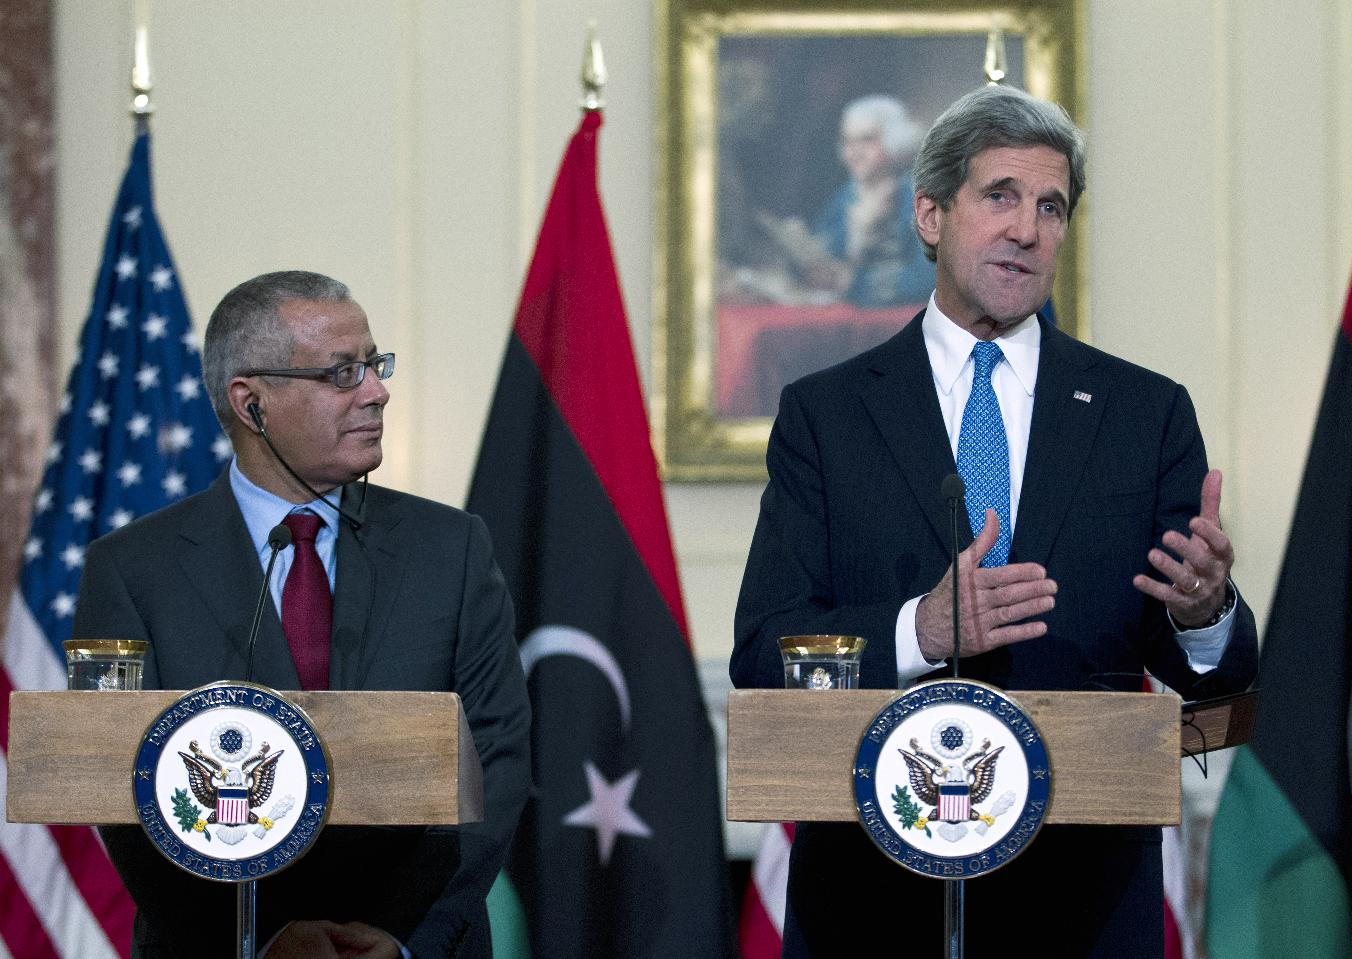 Secretary of State John Kerry and Libyan Prime Minister Ali Zeidan speak to reporters during their joint news conference in Washington. (Jose Luis Magana/AP)